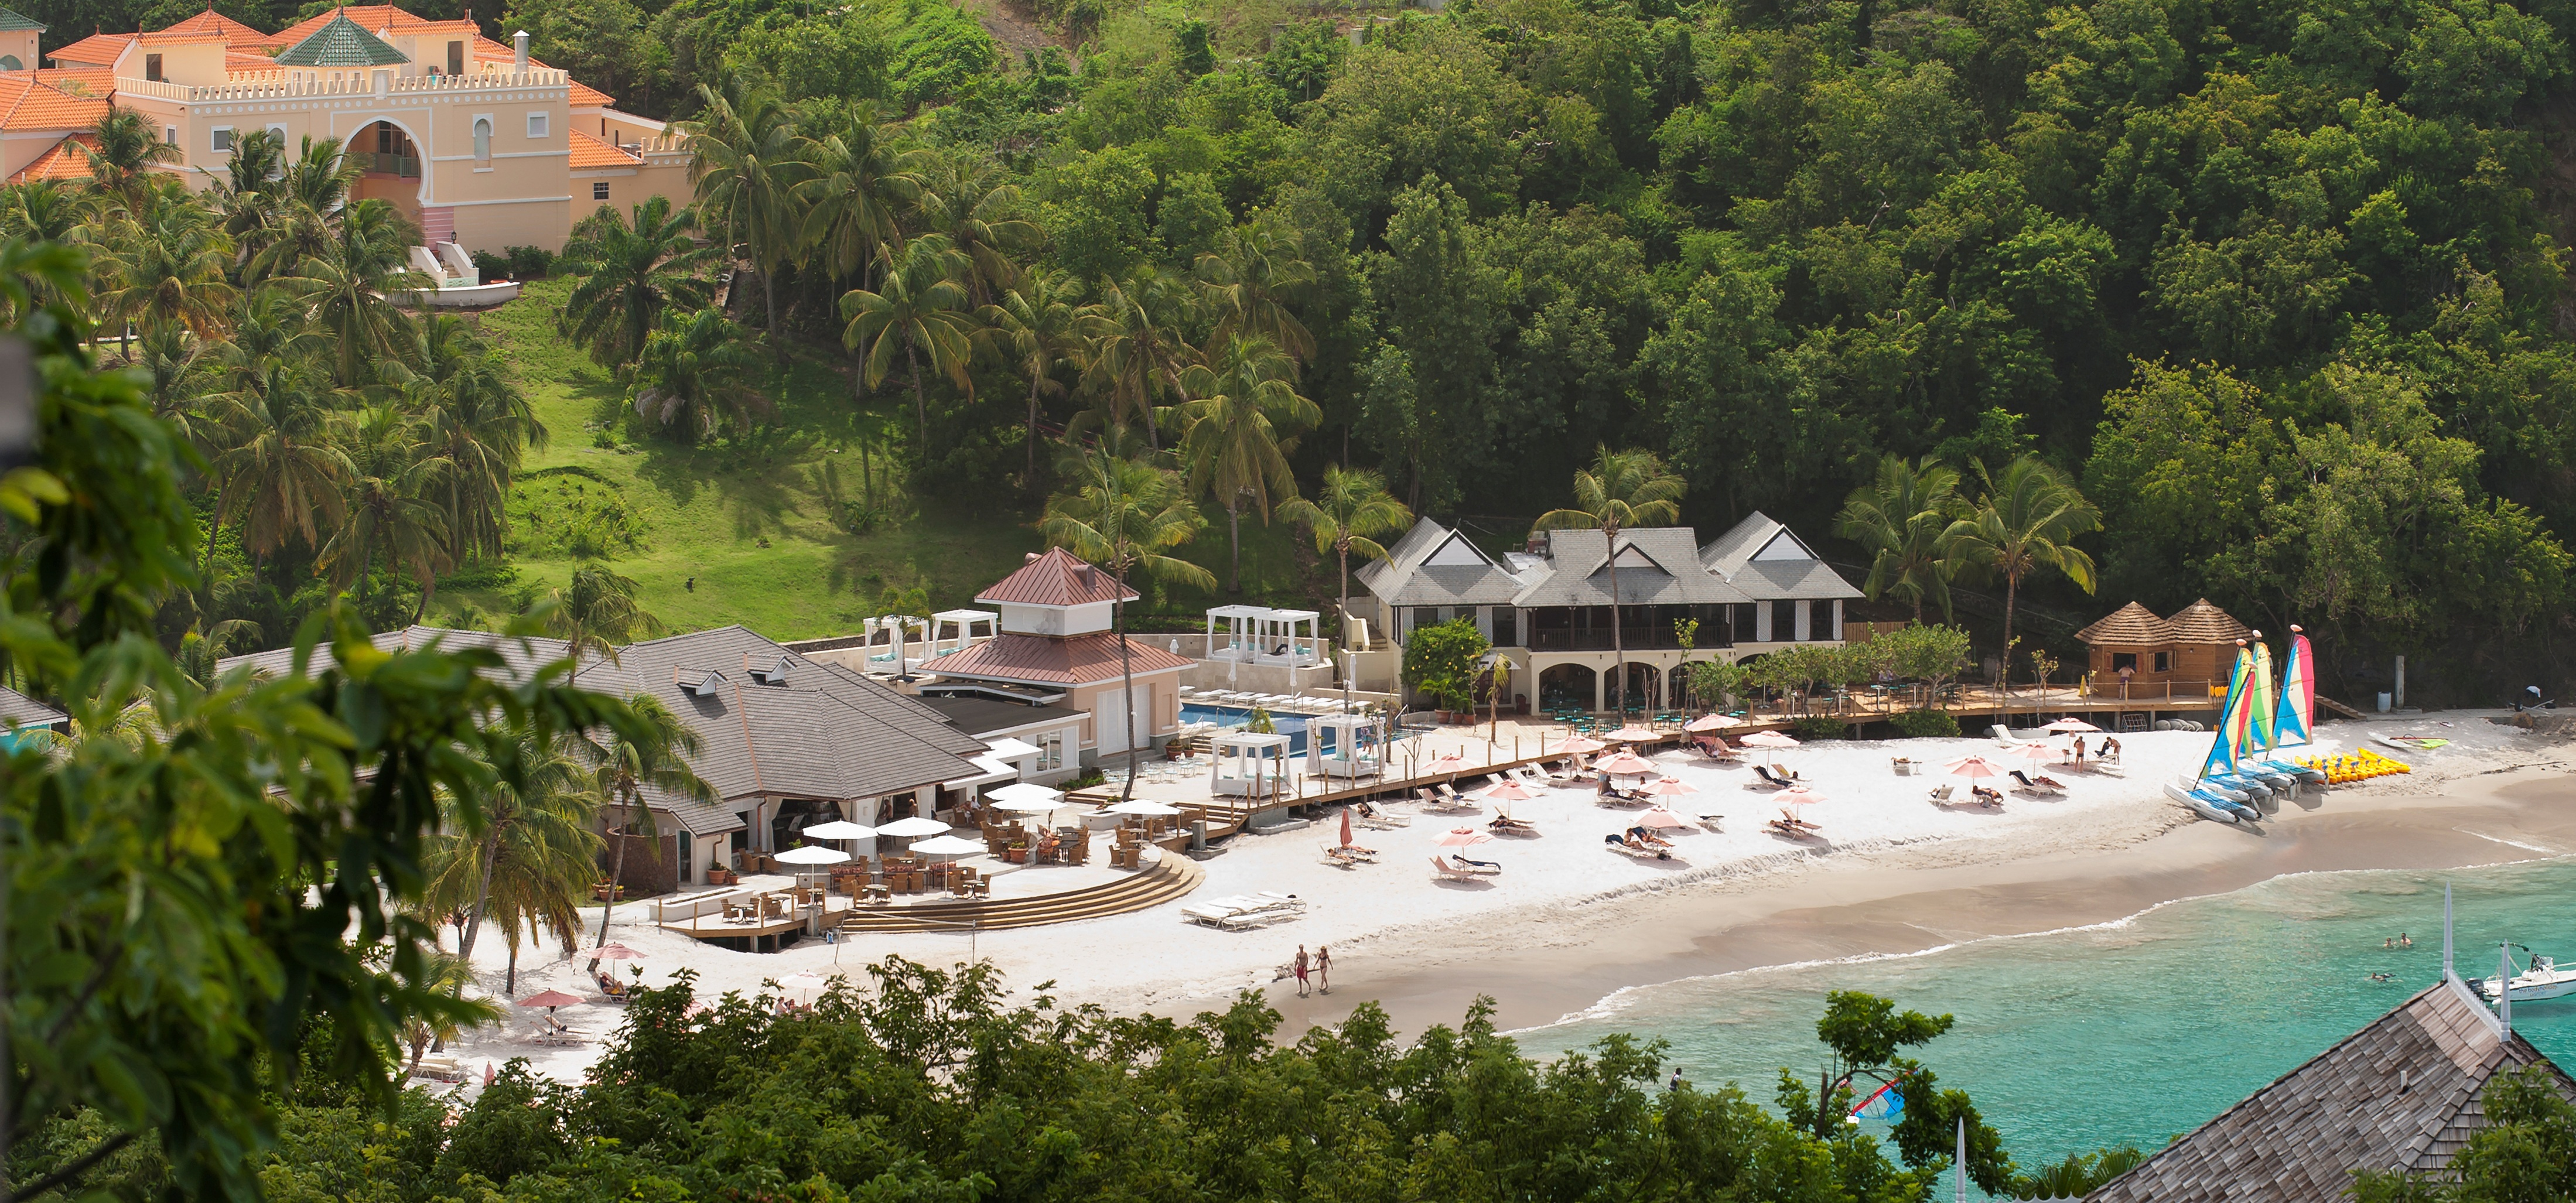 The BodyHoliday,